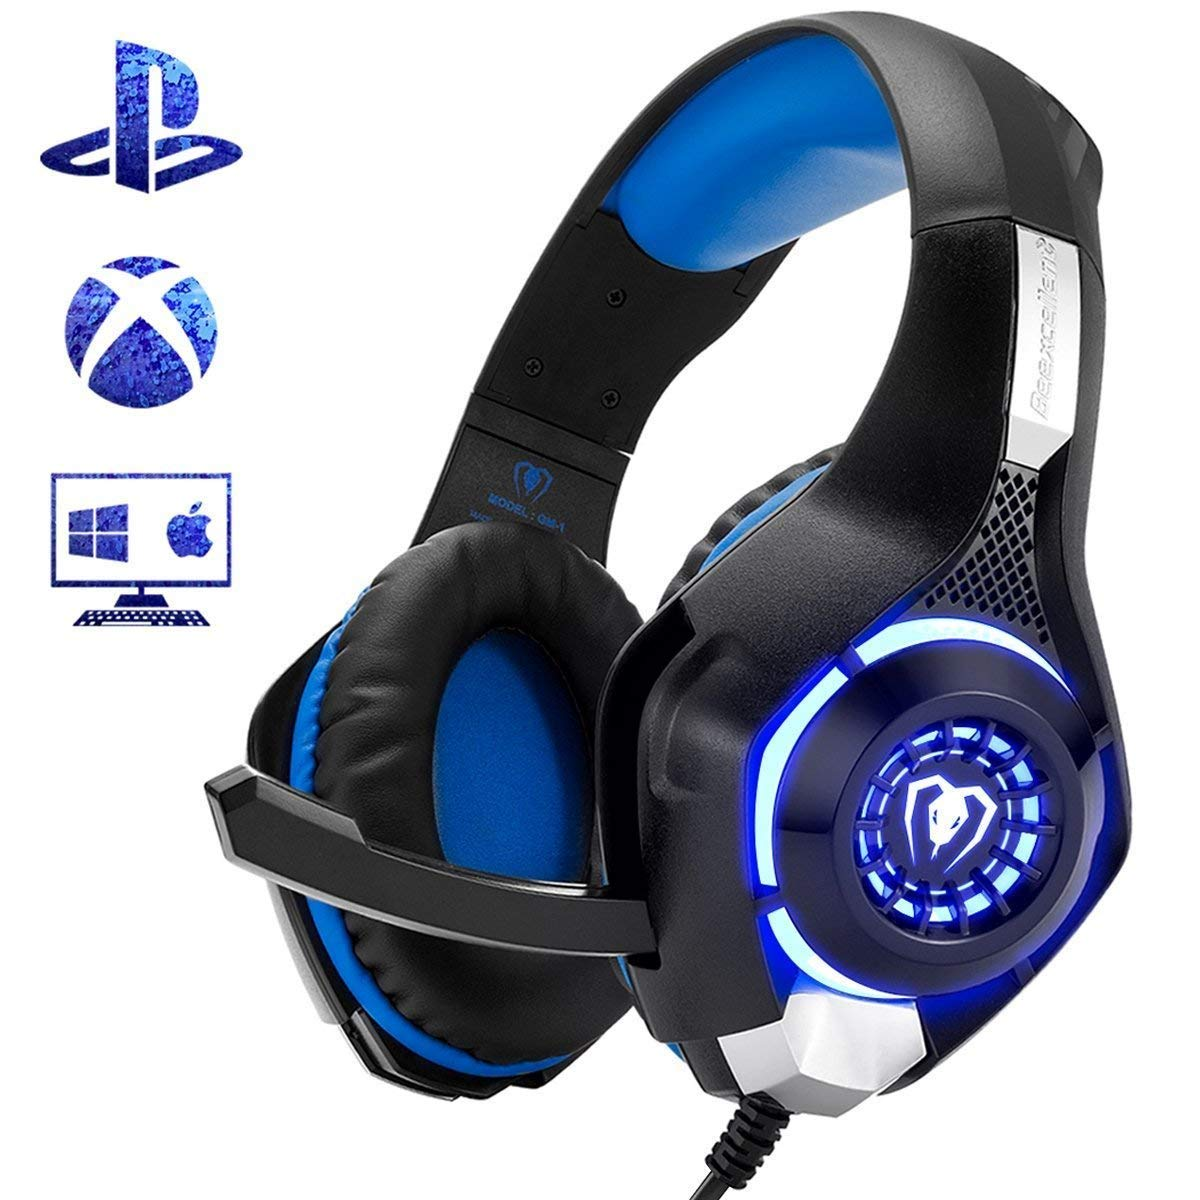 Beexcellent Gaming Headset for PS4 Xbox One PC Mac Controller Gaming Headphone with Crystal Stereo Bass Surround Sound, LED Light & Noise-Isolation Microphone by Beexcellent (Image #1)